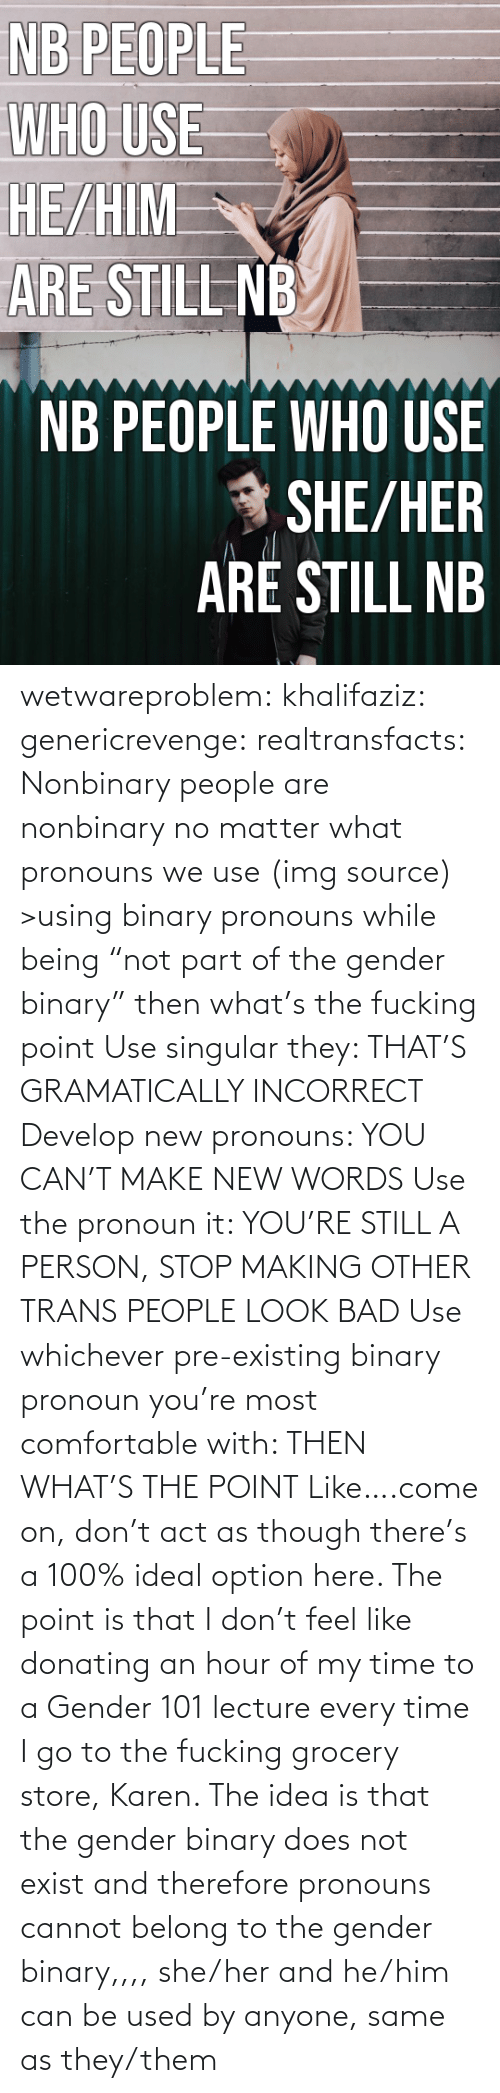 "People Are: NB PEOPLE  WHO USE  HE/HIM  ARE STILL NB   NB PEOPLE WHO USE  * SHE/HER  ARÉ STILL NB wetwareproblem: khalifaziz:   genericrevenge:   realtransfacts: Nonbinary people are nonbinary no matter what pronouns we use (img source)   >using binary pronouns while being ""not part of the gender binary"" then what's the fucking point   Use singular they: THAT'S GRAMATICALLY INCORRECT Develop new pronouns: YOU CAN'T MAKE NEW WORDS Use the pronoun it: YOU'RE STILL A PERSON, STOP MAKING OTHER TRANS PEOPLE LOOK BAD Use whichever pre-existing binary pronoun you're most comfortable with: THEN WHAT'S THE POINT Like….come on, don't act as though there's a 100% ideal option here.    The point is that I don't feel like donating an hour of my time to a Gender 101 lecture every time I go to the fucking grocery store, Karen.     The idea is that the gender binary does not exist and therefore pronouns cannot belong to the gender binary,,,, she/her and he/him can be used by anyone, same as they/them"